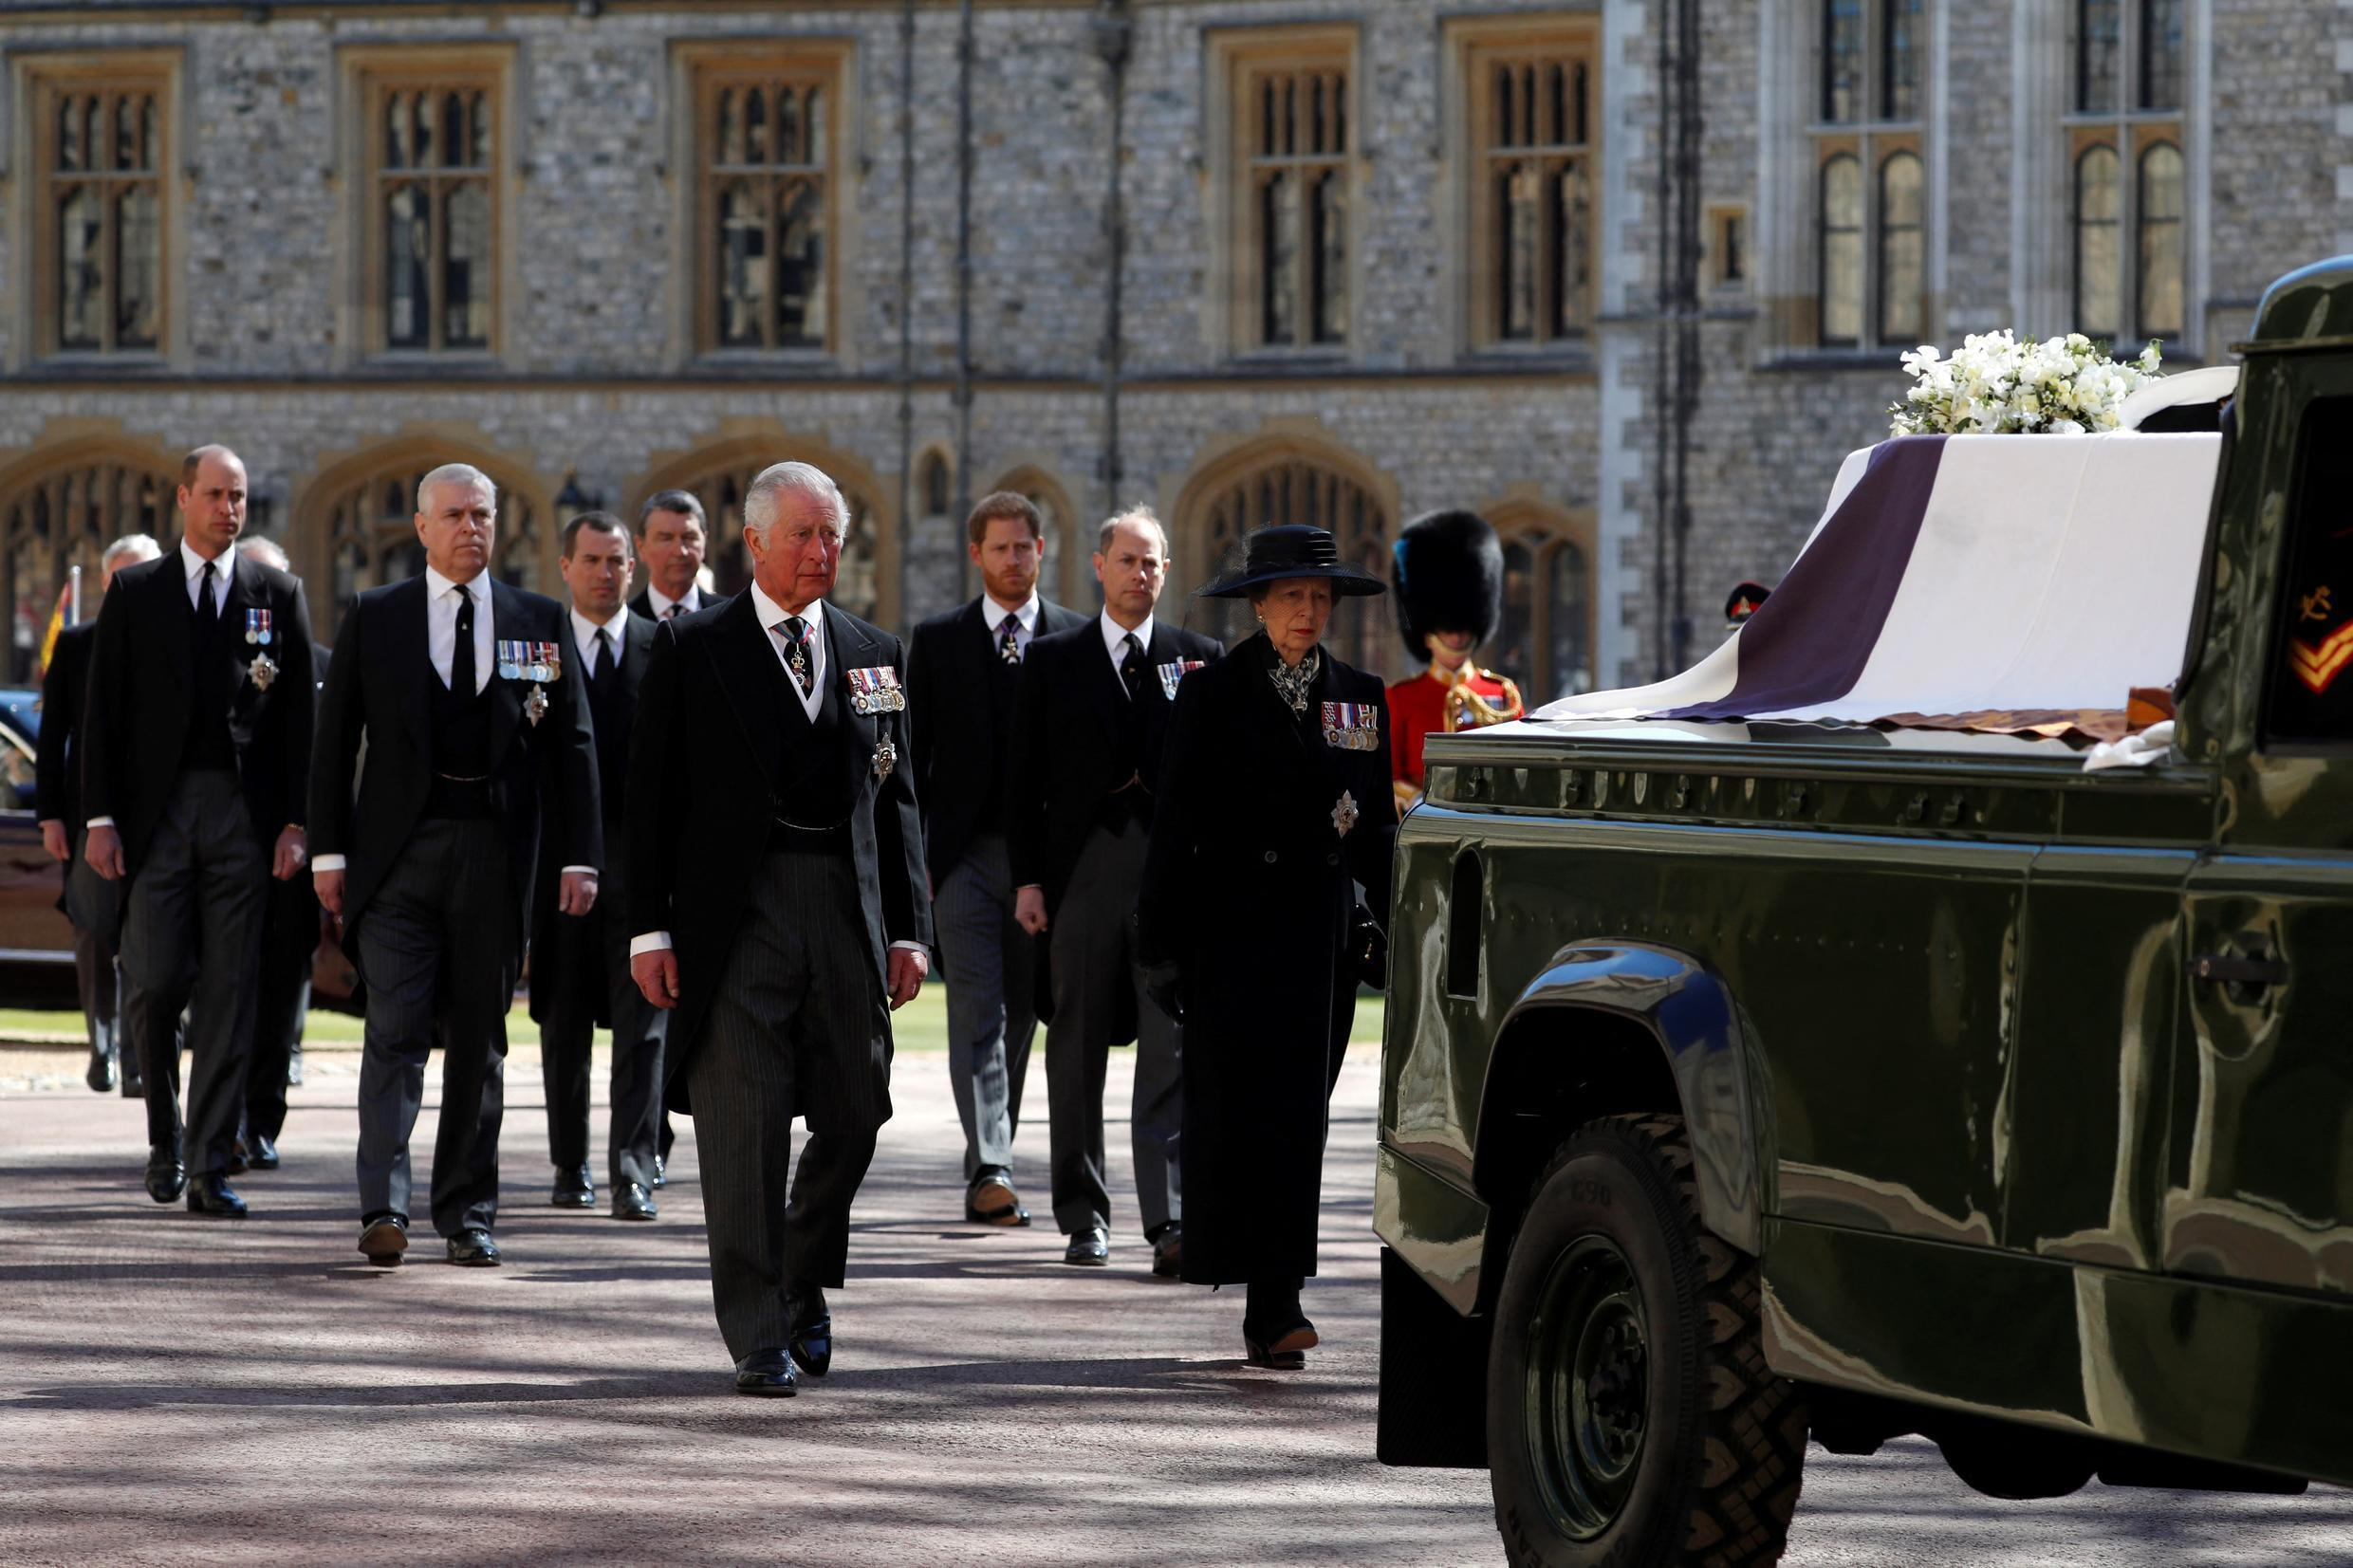 Prince Charles of England, Prince of Wales and Princess Anne of England, Princess Royal, lead the ceremonial funeral procession of Prince Philip of England, Duke of Edinburgh towards St George's Chapel at Windsor Castle in Windsor, west of London, April 17, 2021.